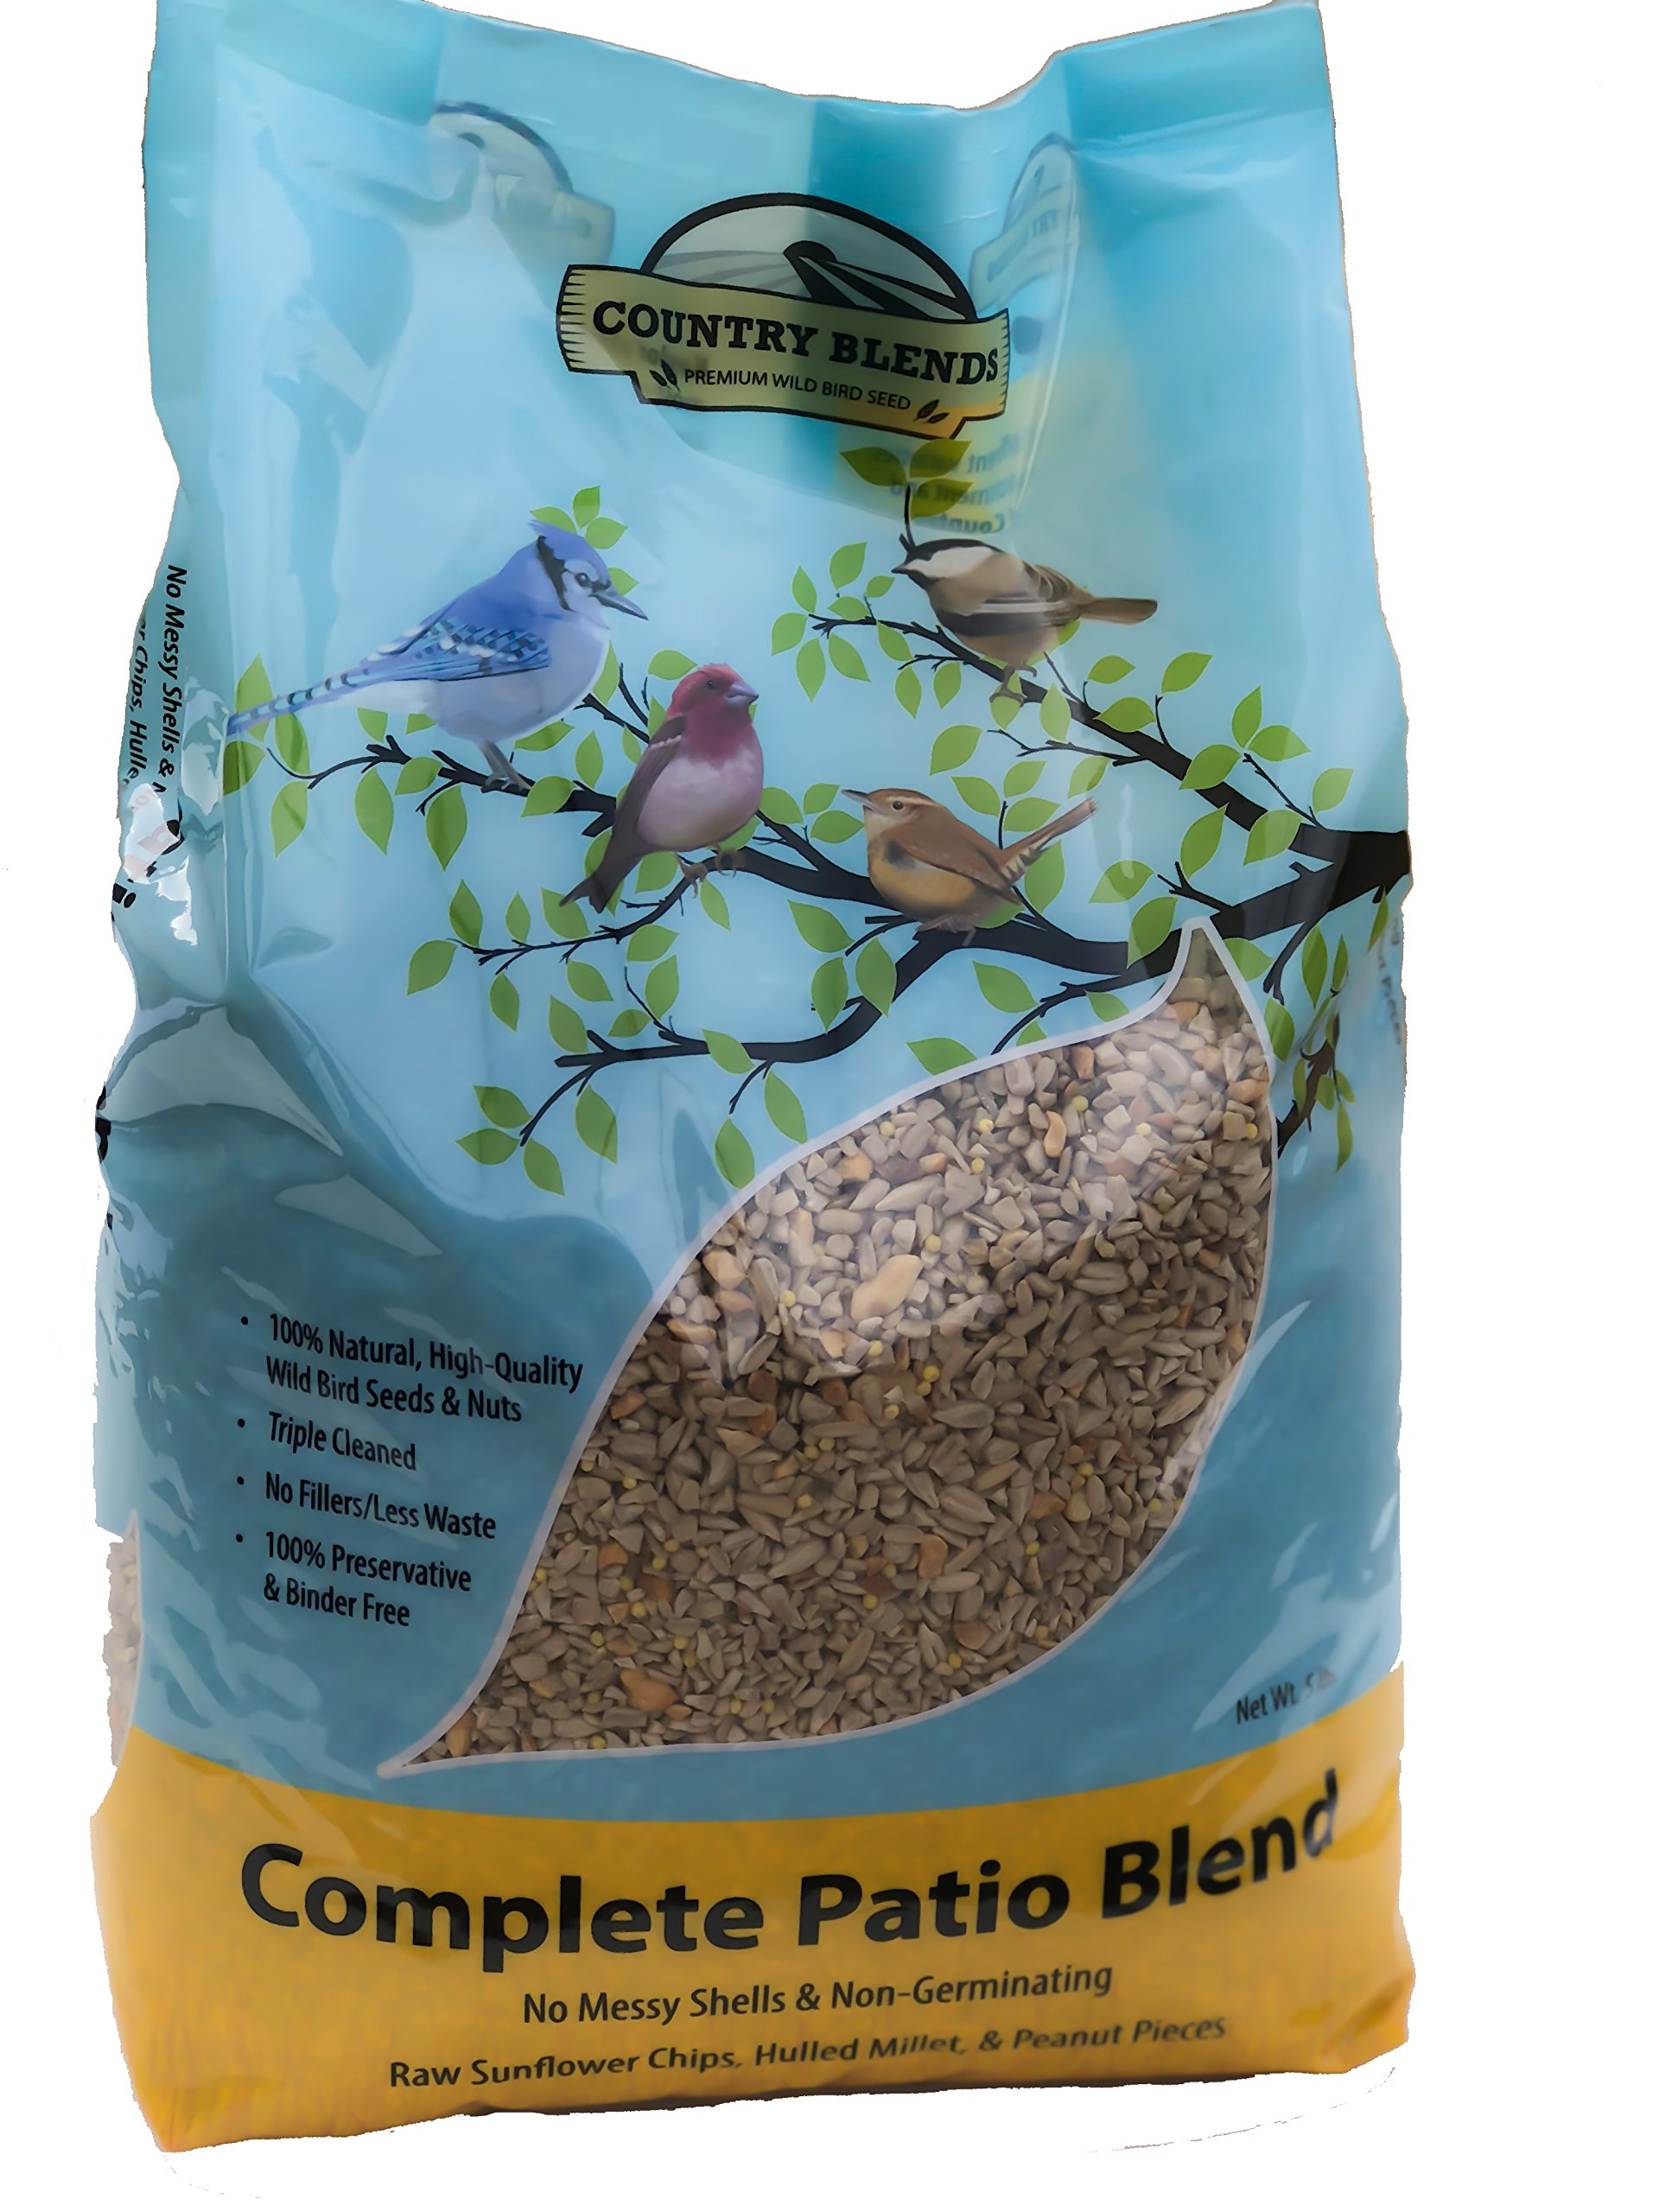 Country Blends Complete Patio Blend 5lb